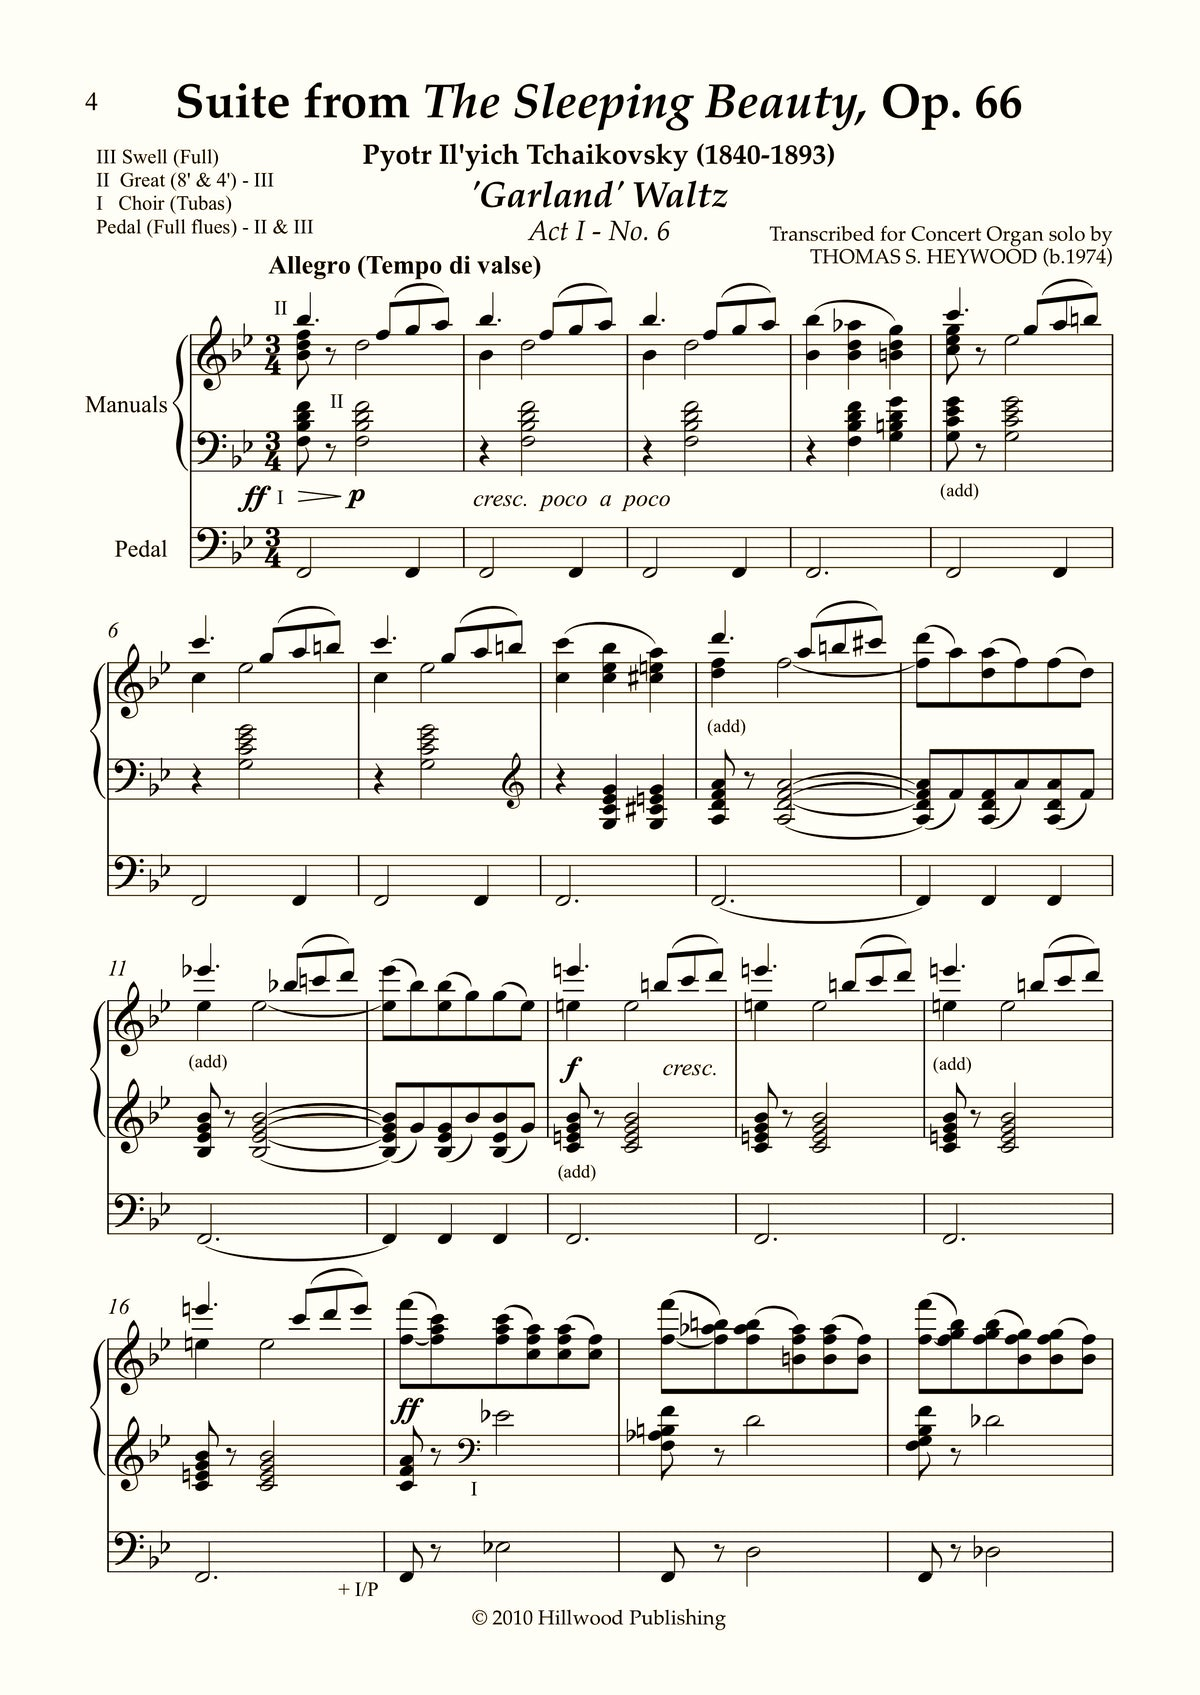 Tchaikovsky/Heywood - 'Garland' Waltz from Suite from The Sleeping Beauty, Op. 66 (Score) | Thomas Heywood | Concert Organ International